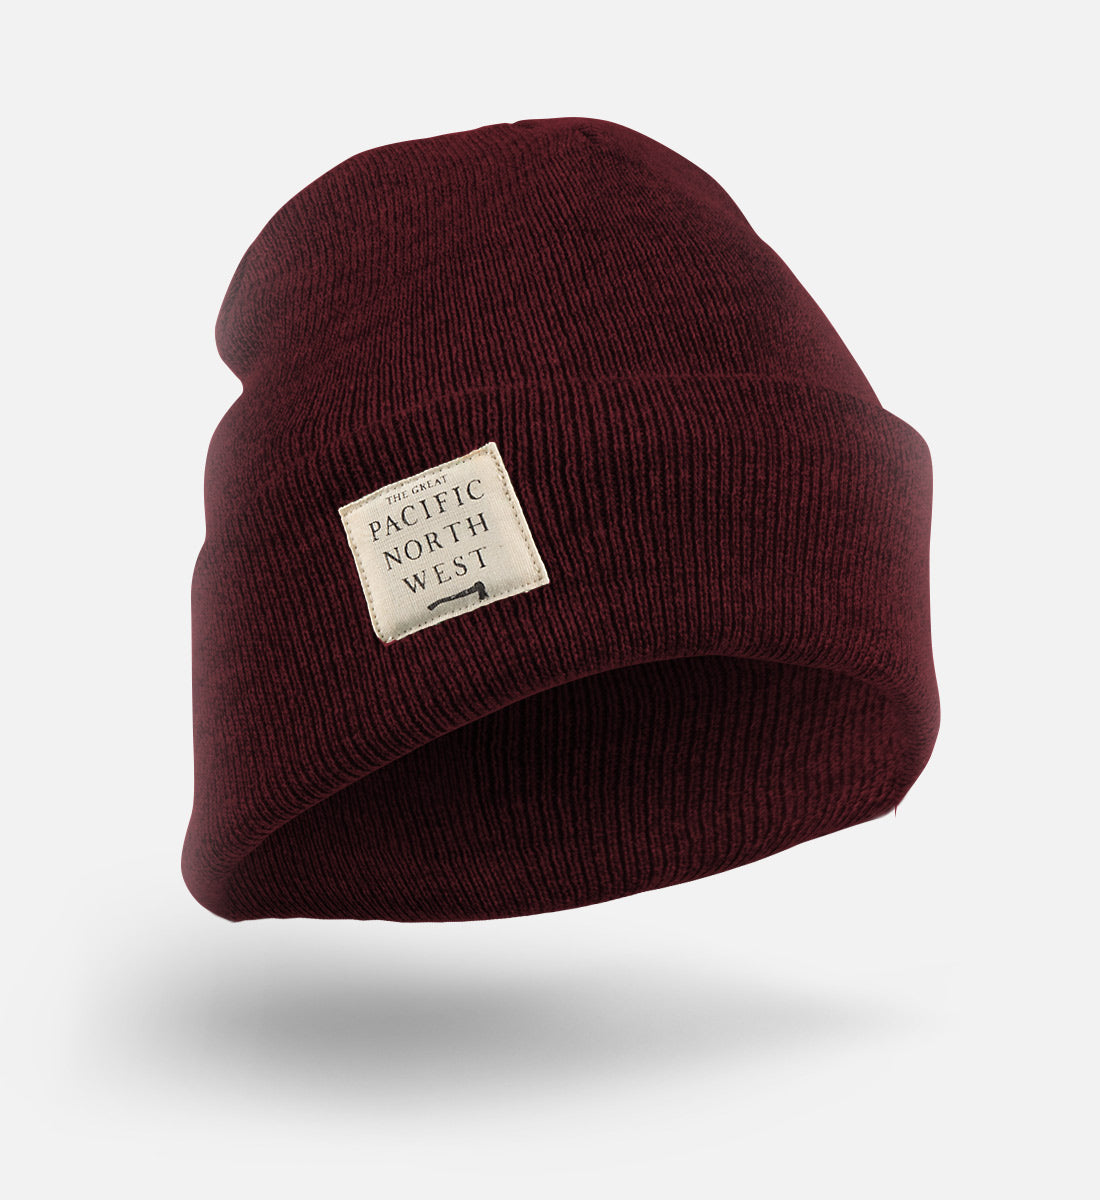 Lumberjack Beanie - Maroon - The Great PNW